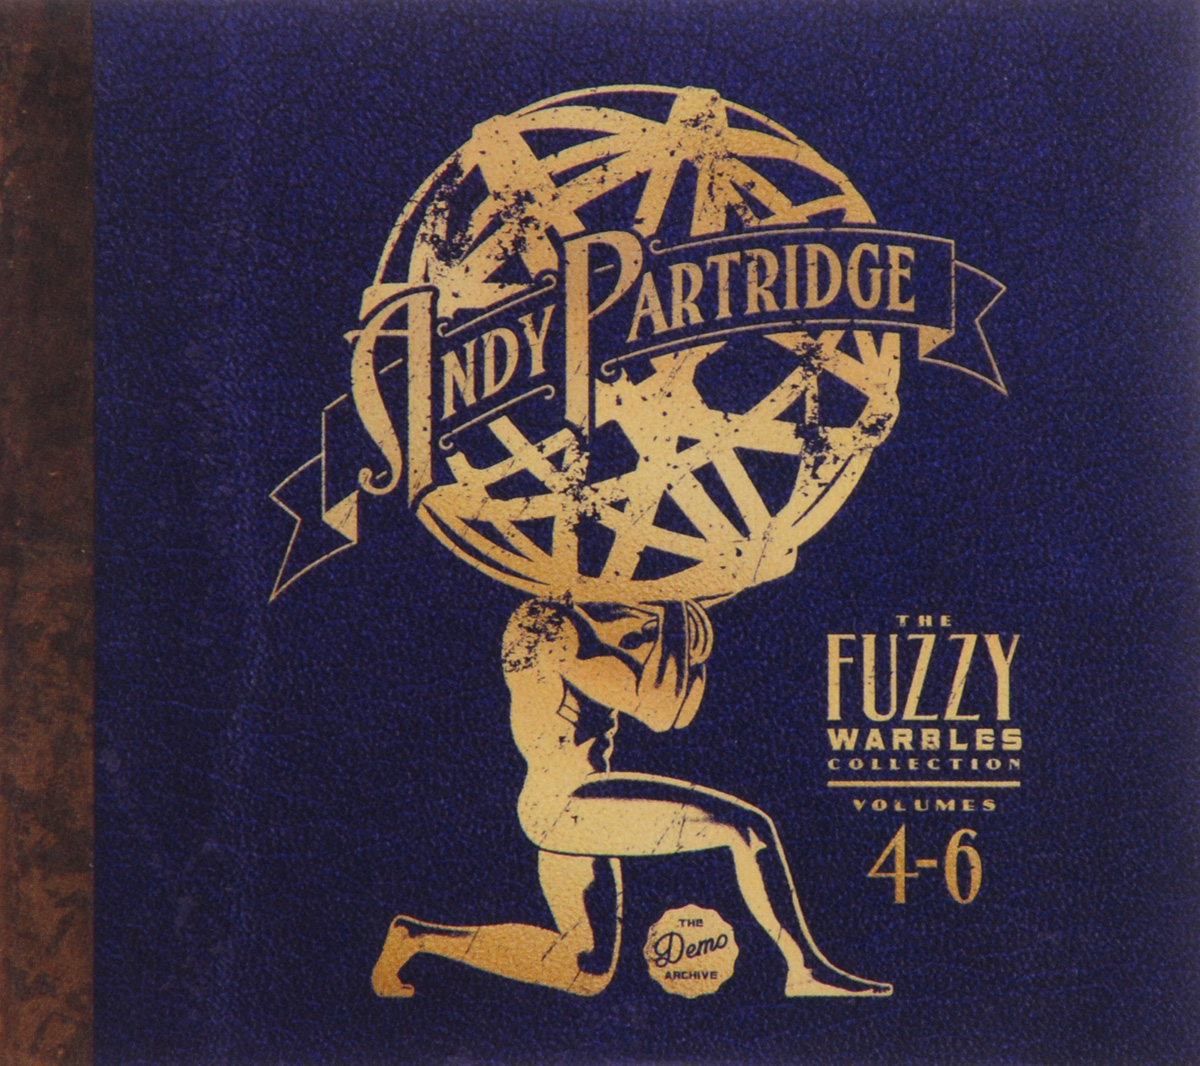 Andrew John Andy Partridge Andy Partridge. Fuzzy Warbles. Volumes 4-6 (3 CD) andrew john andy partridge andy partridge powers